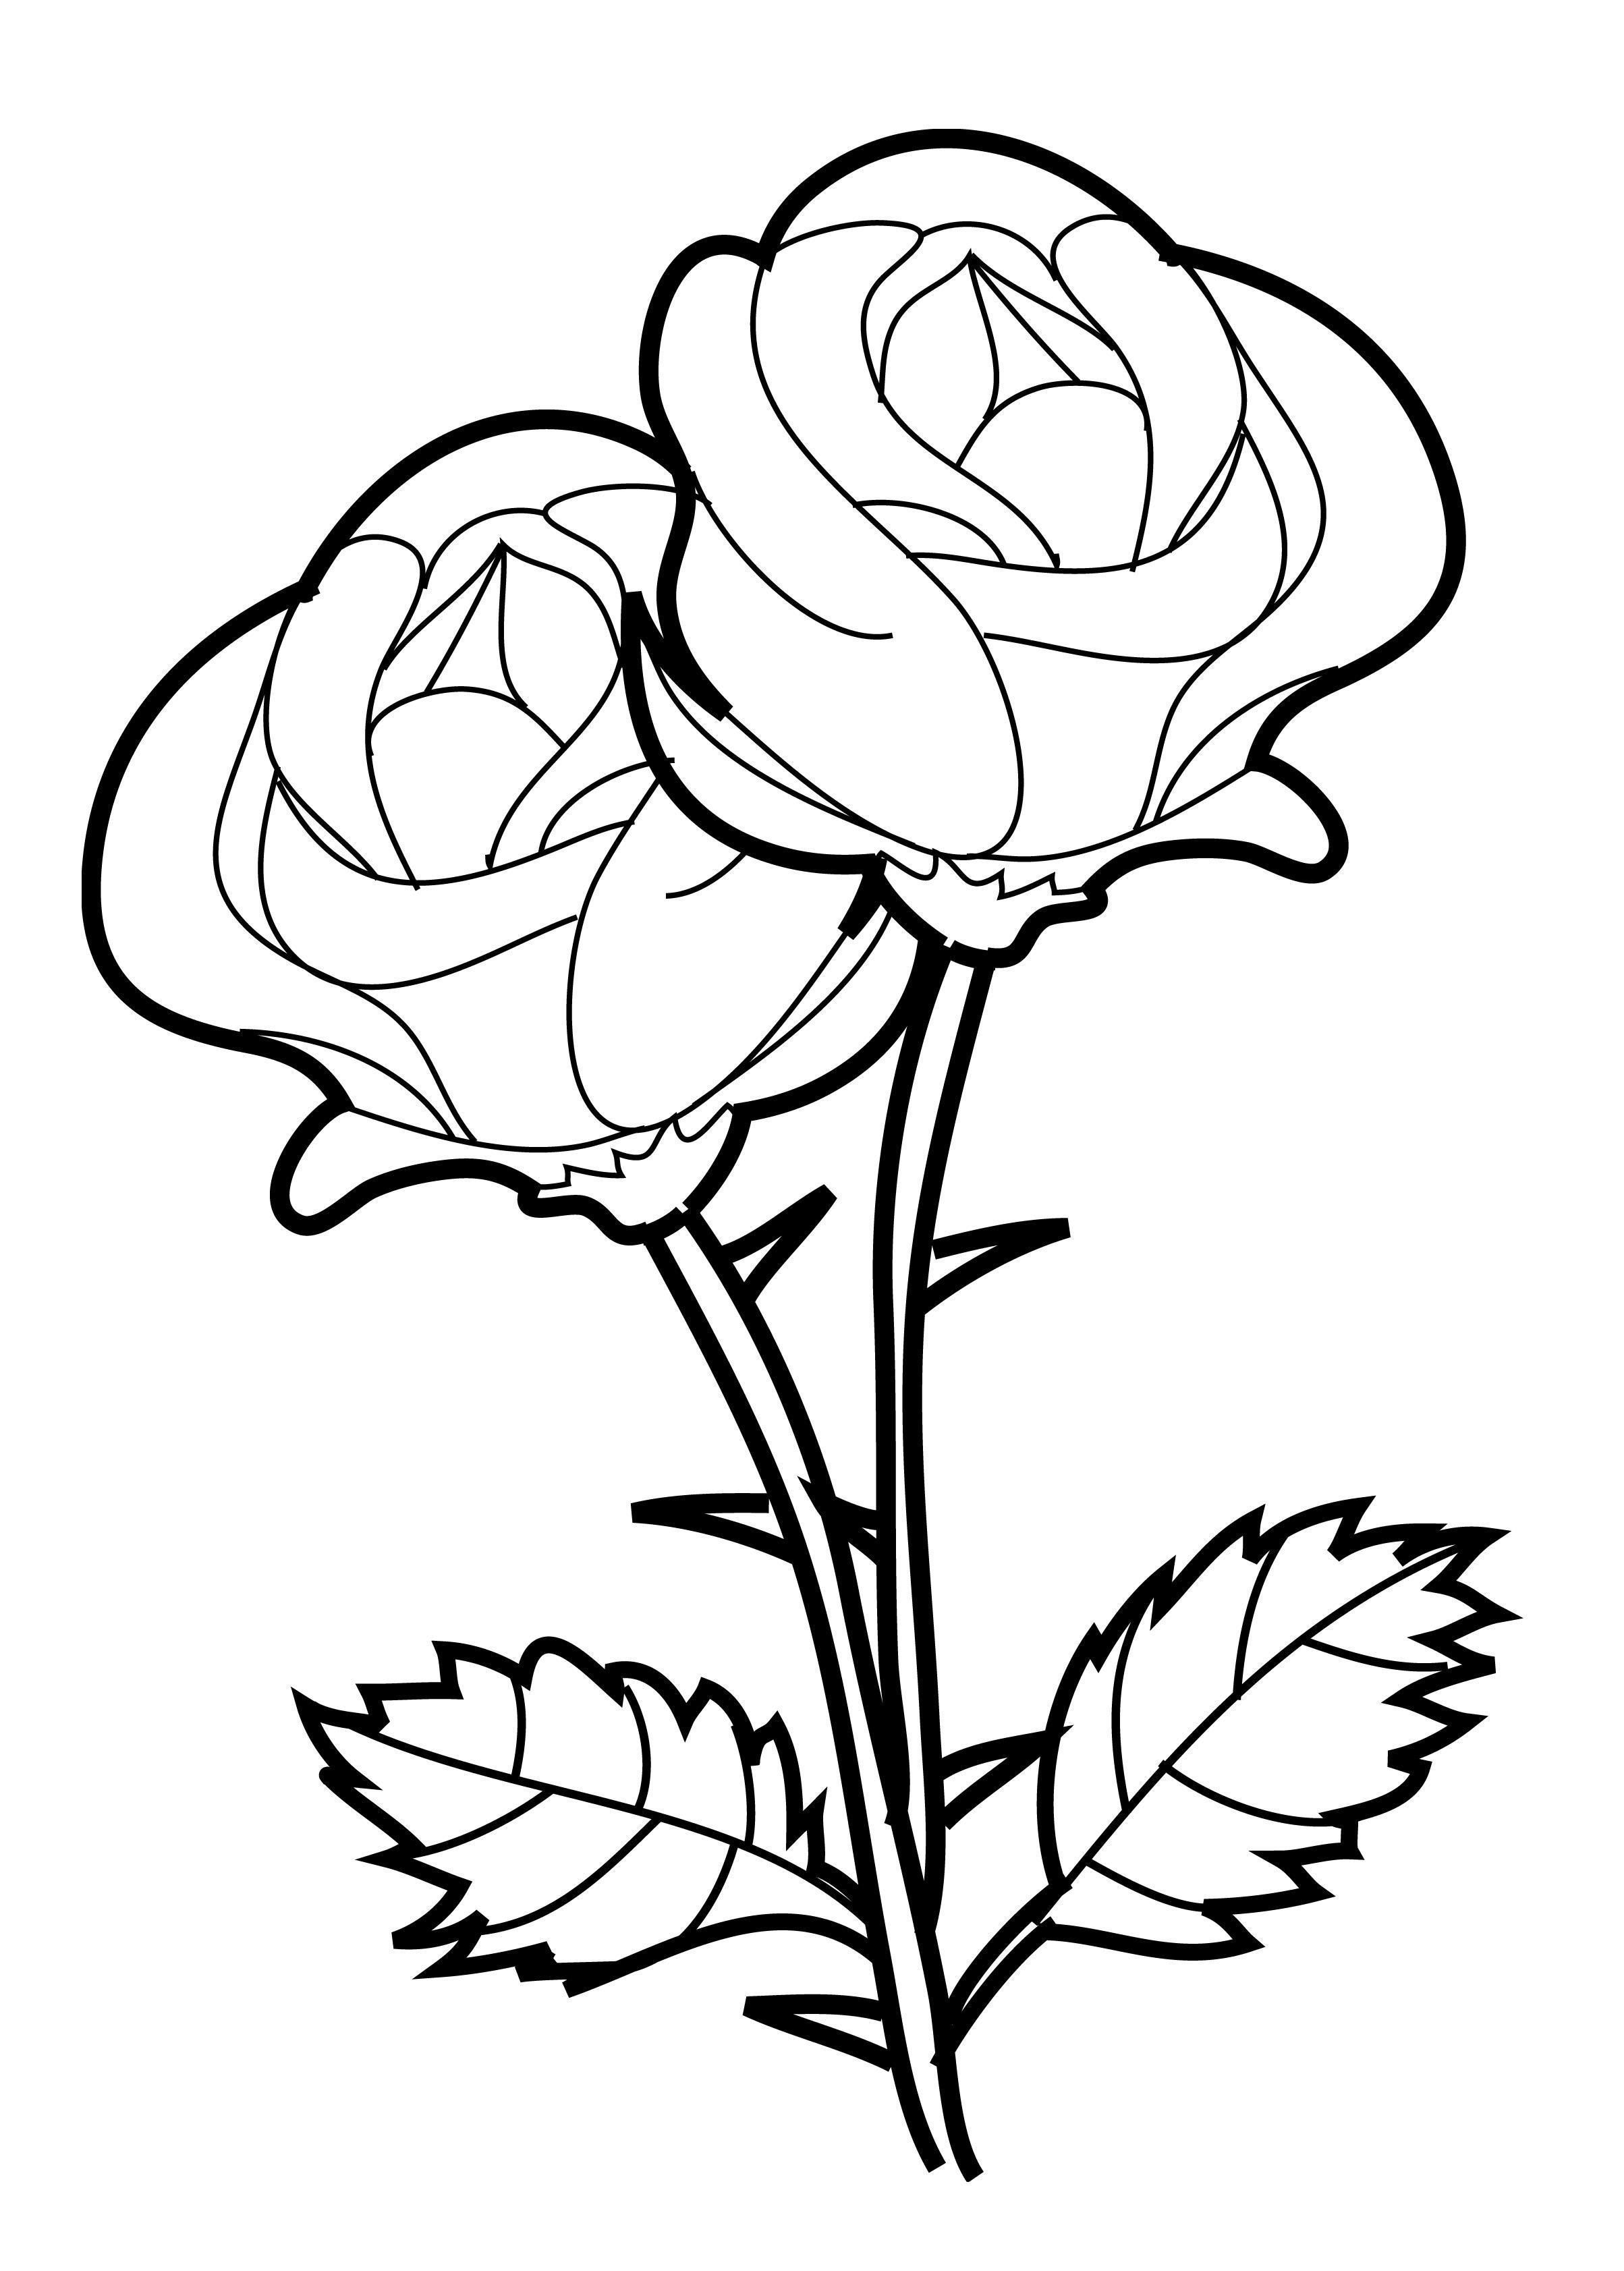 Beautiful Roses Coloring Pages By Gregory Rose Coloring Pages Printable Flower Coloring Pages Mandala Coloring Pages